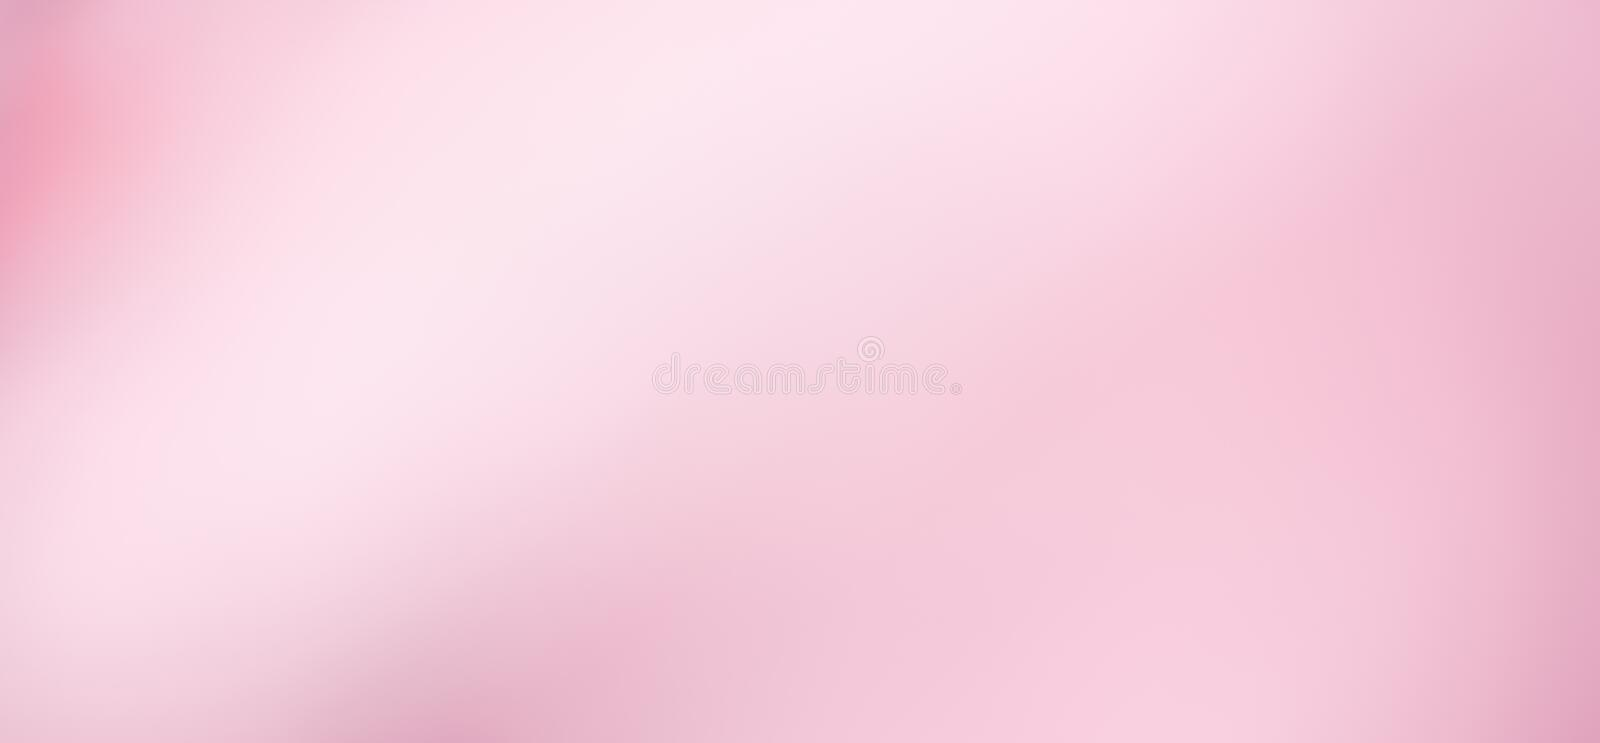 Clean soft Pink background. Wide Angle Light Pink Blur background. Pink and white gradient Texture for Design. Clean soft background. Beautiful Abstract royalty free illustration